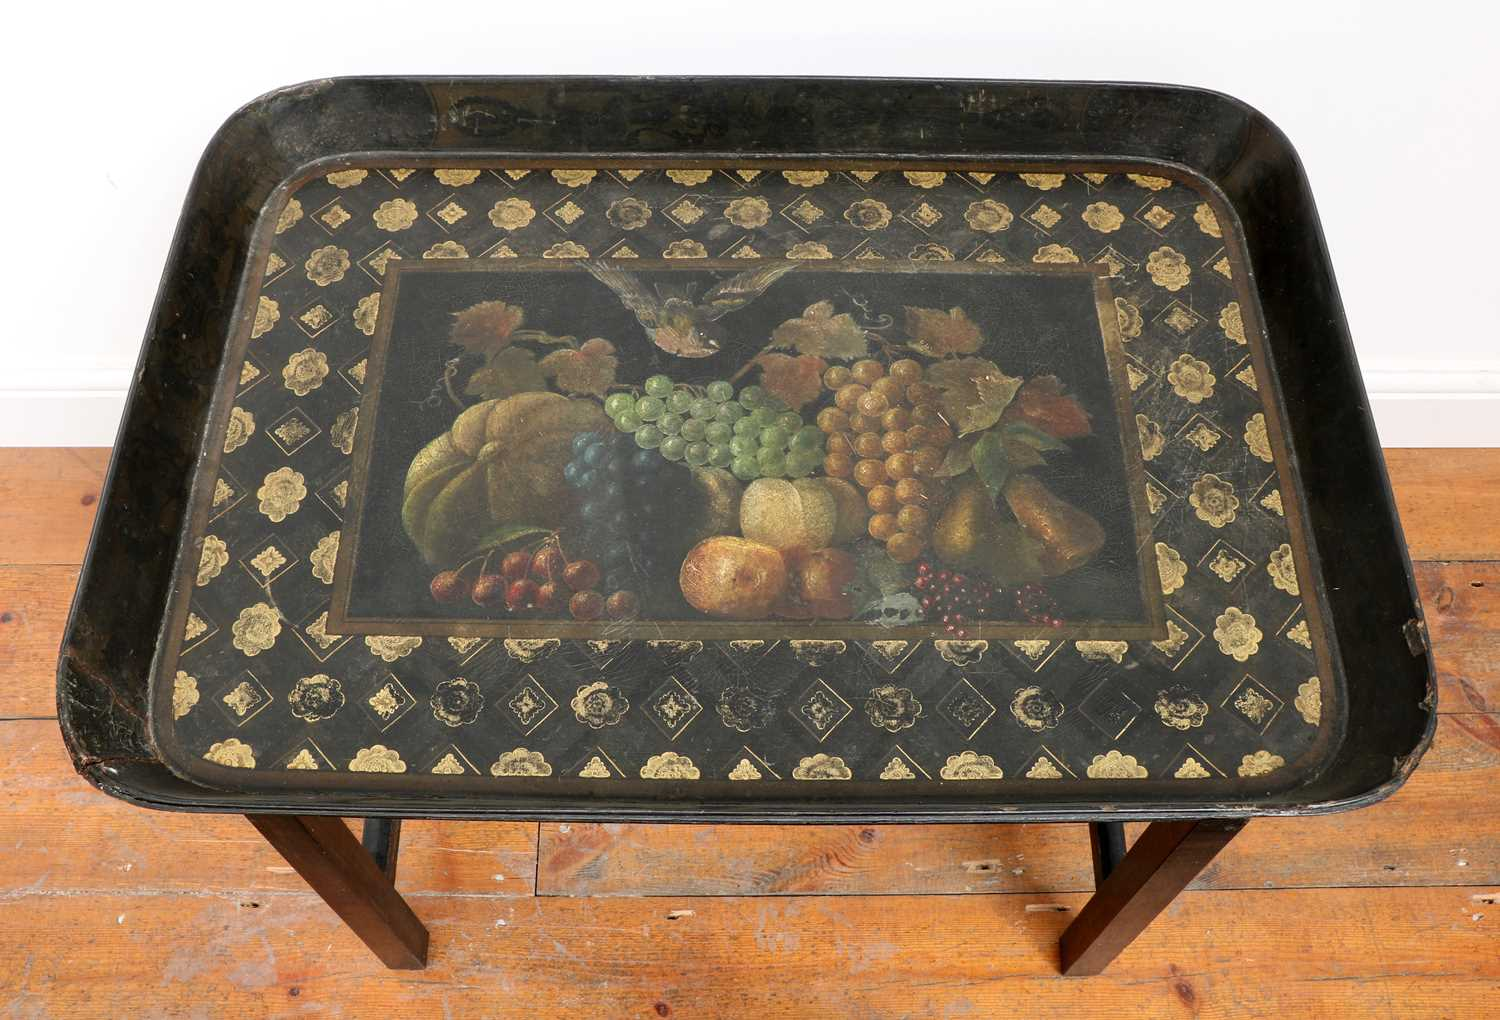 A Regency black lacquer galleried tray on stand, - Image 2 of 5